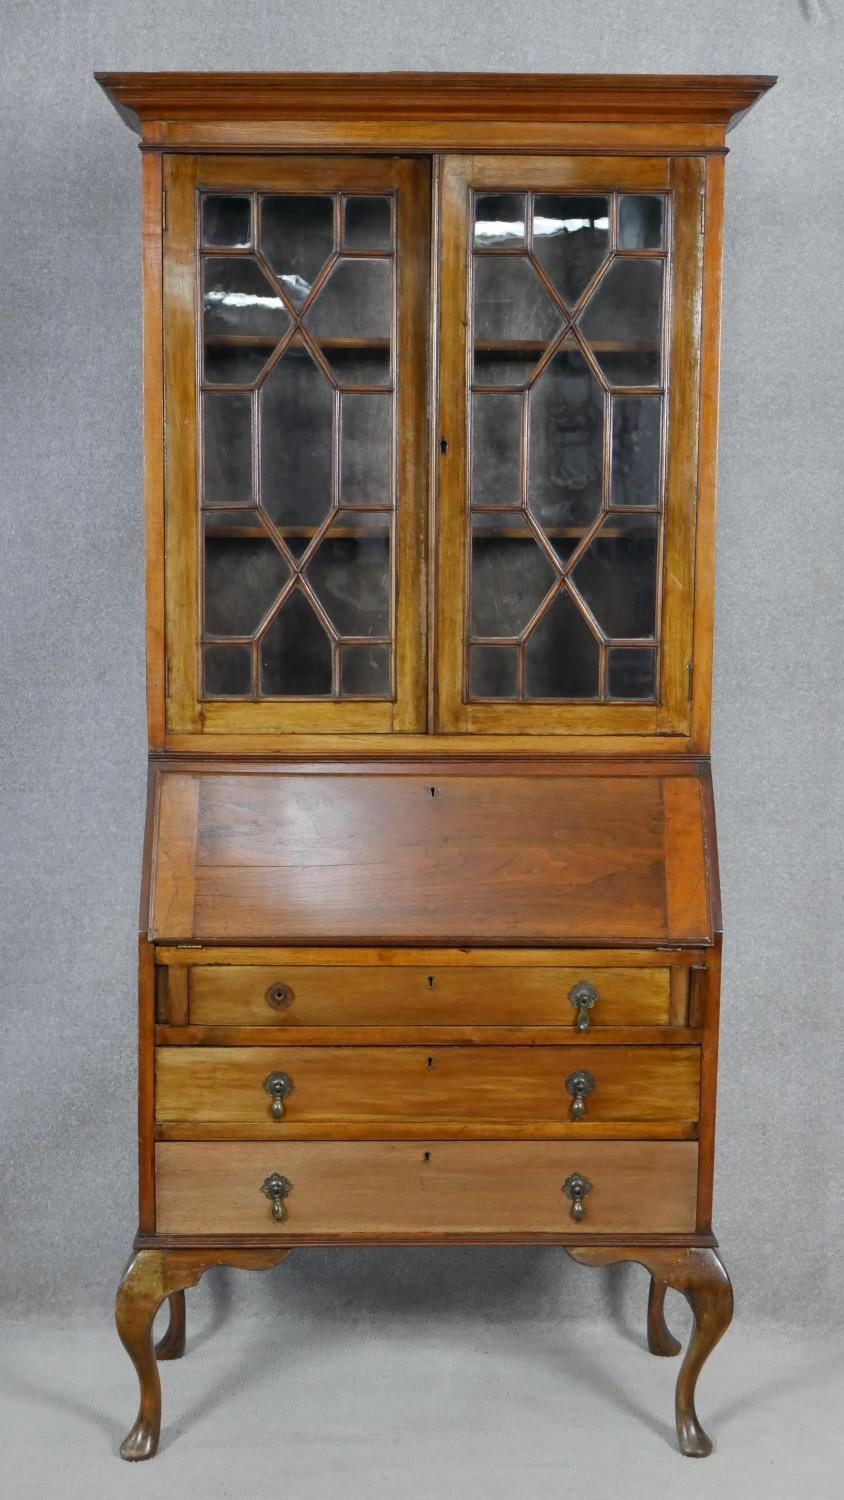 An early 20th century mahogany two section Georgian style bureau bookcase with fitted interior on